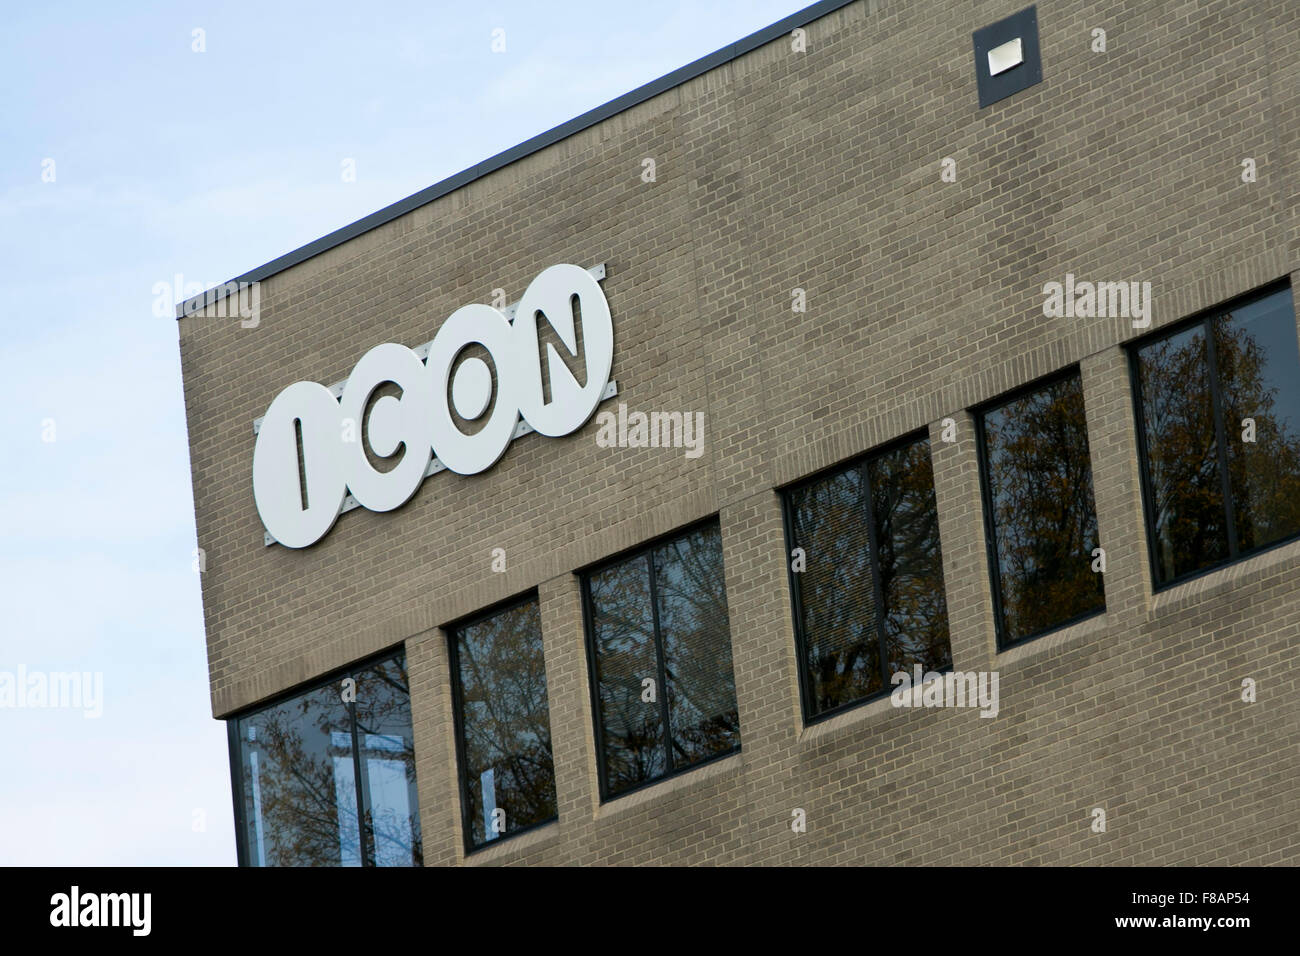 Office Icon Stock Photos & Office Icon Stock Images - Alamy